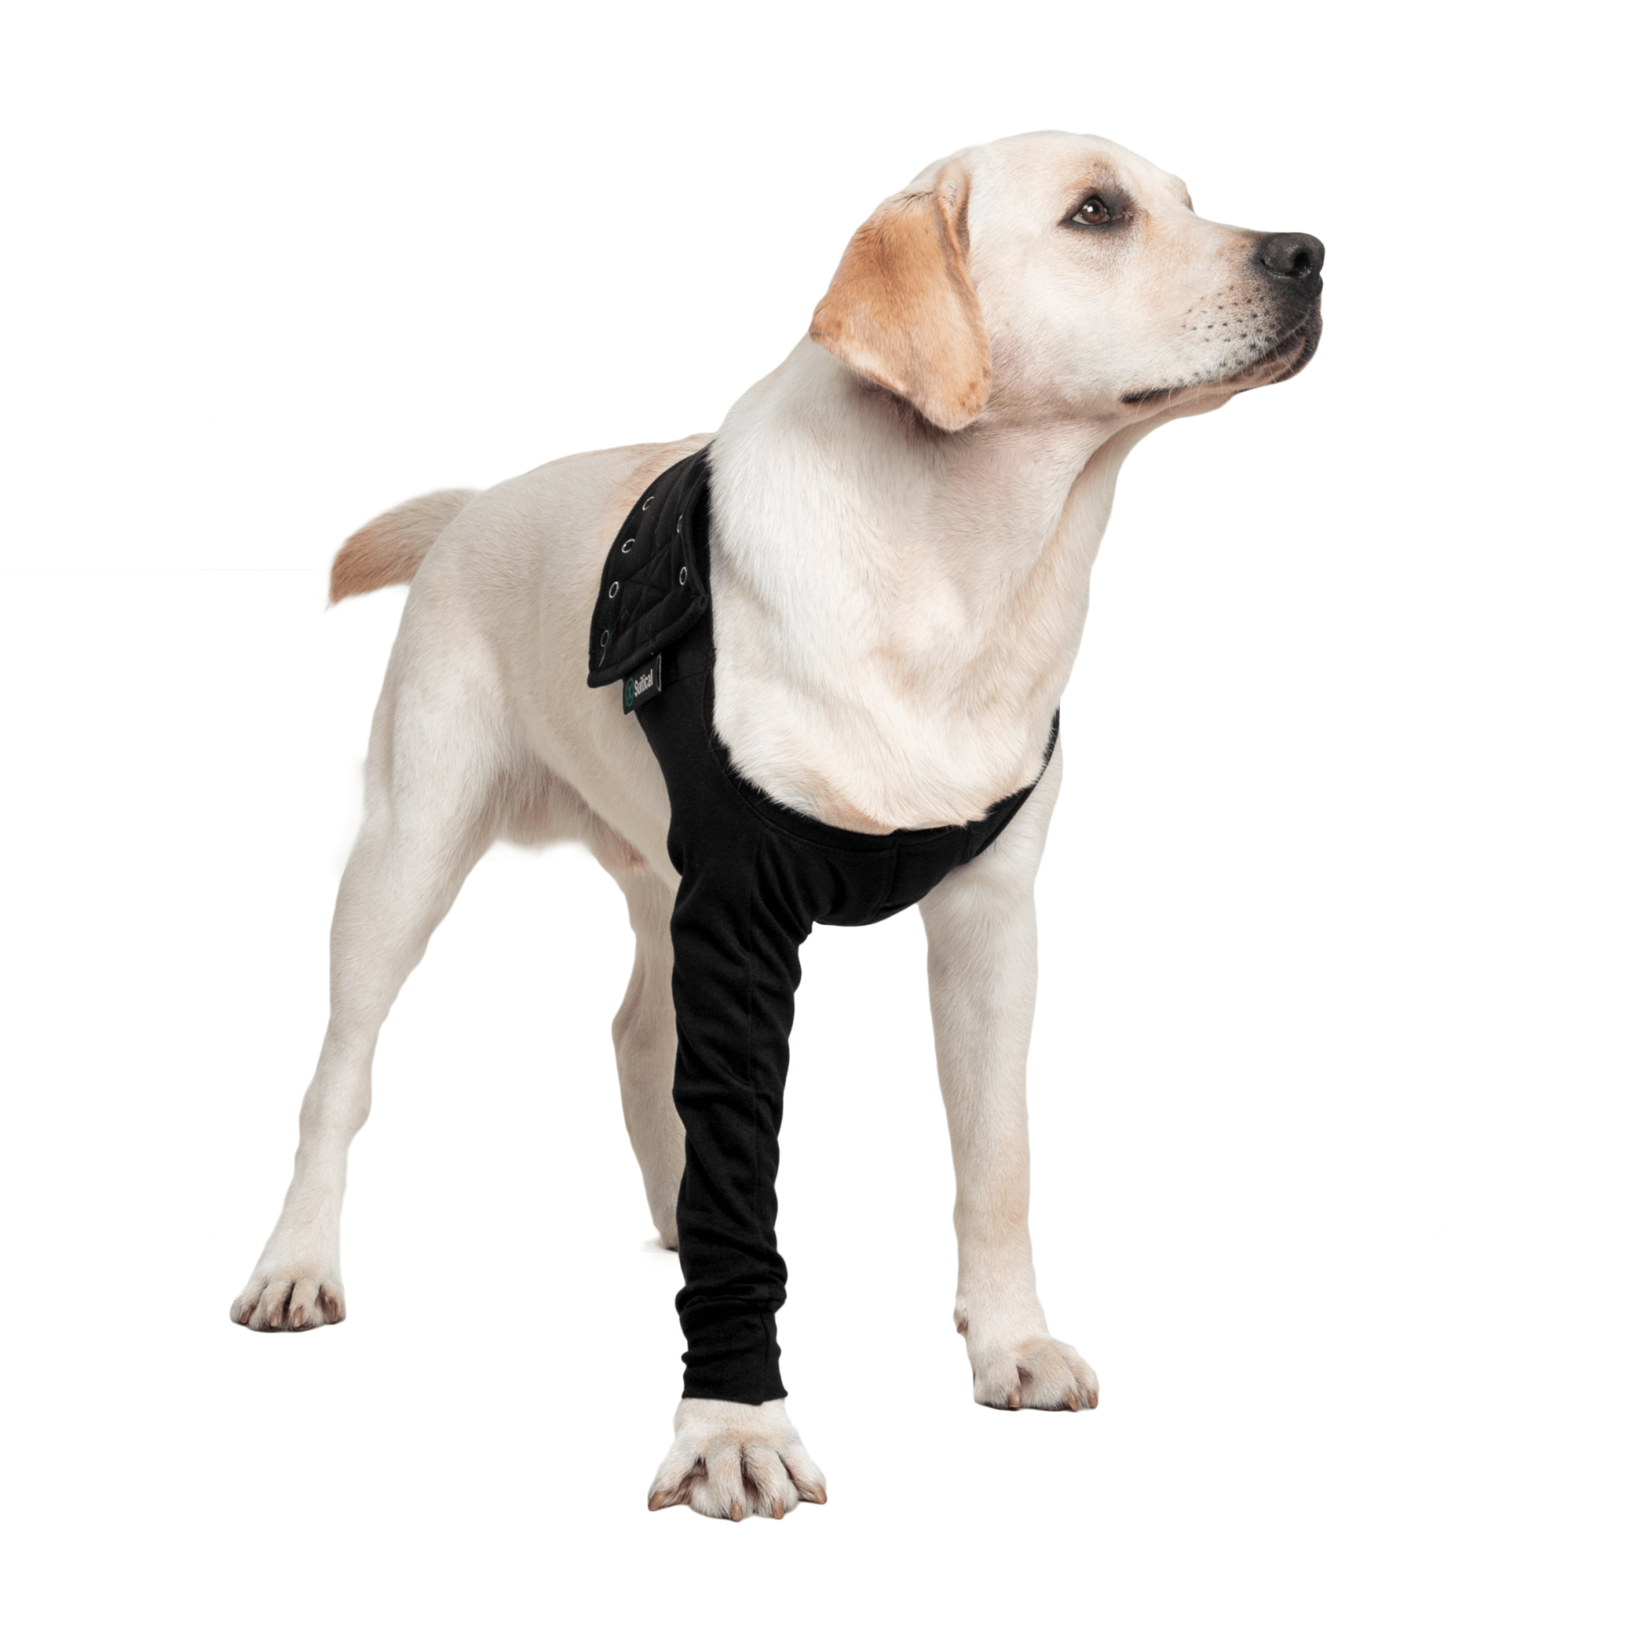 Suitical Happy Recovery Suitical Dog Recovery Sleeve Small